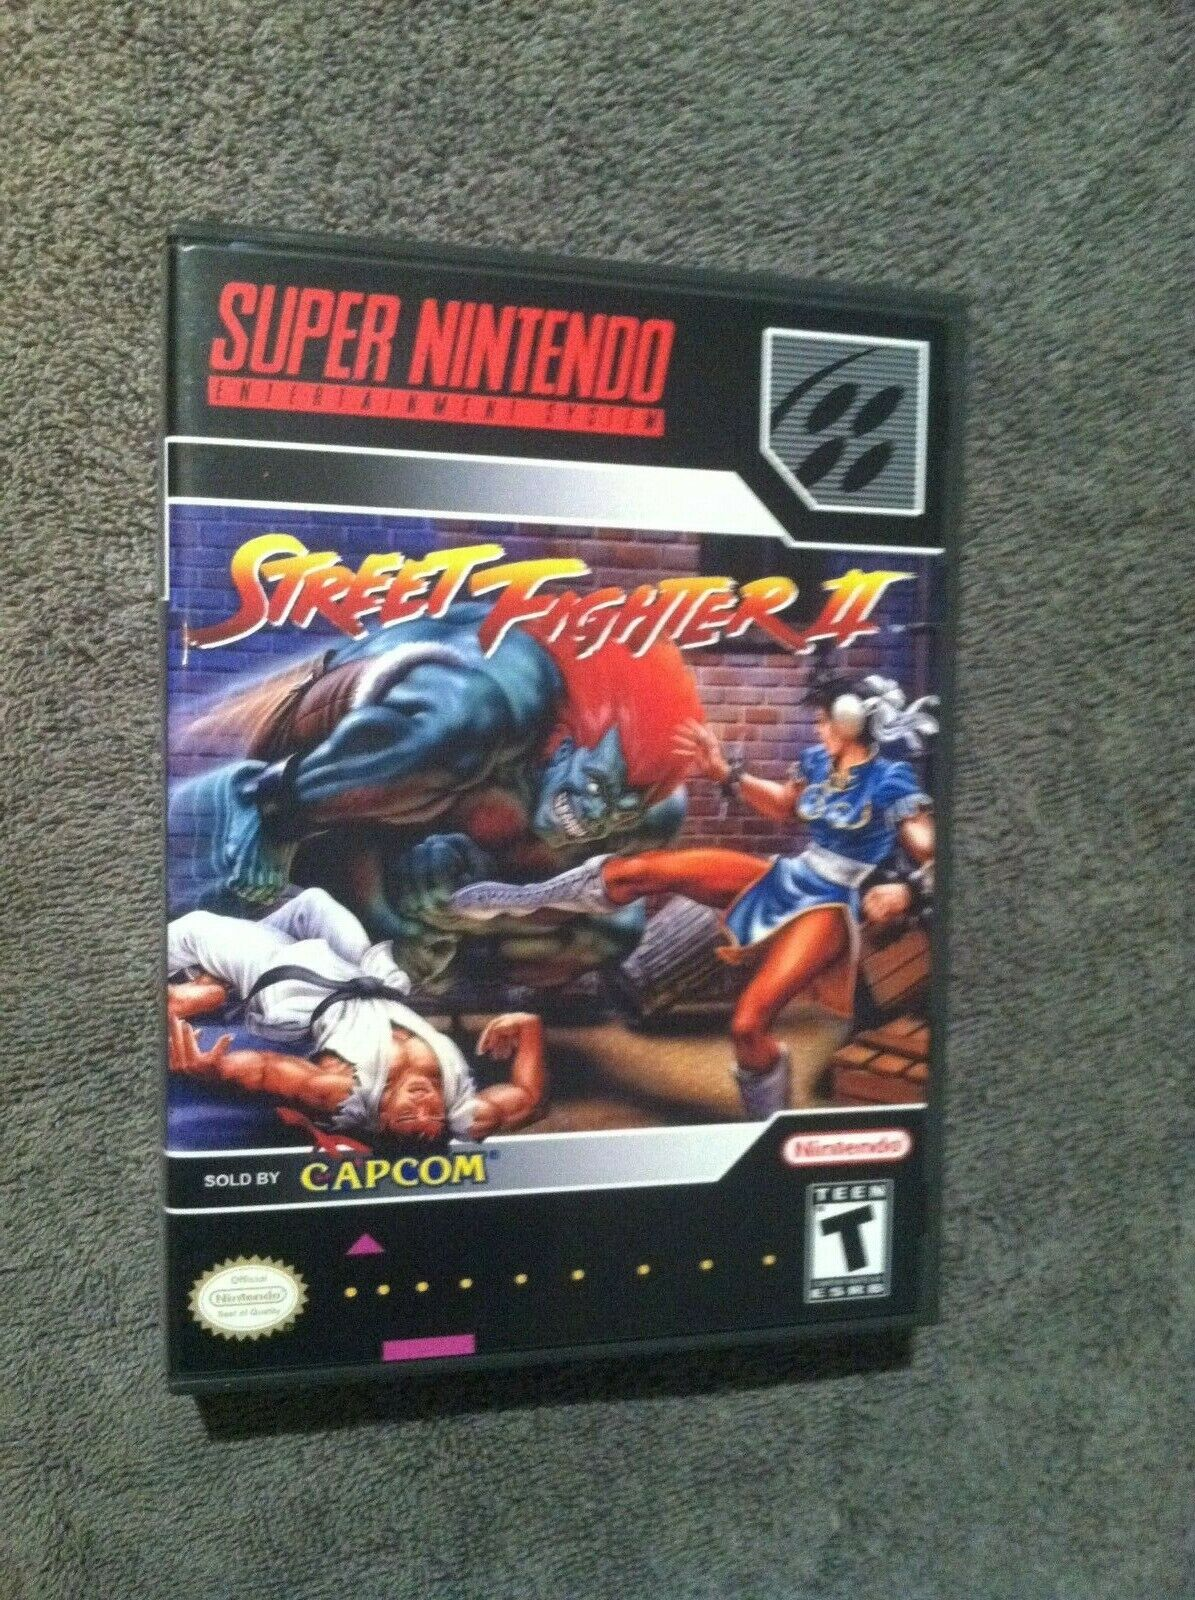 Street Fighter II Super Nintendo Game Case And Manual - $3.25